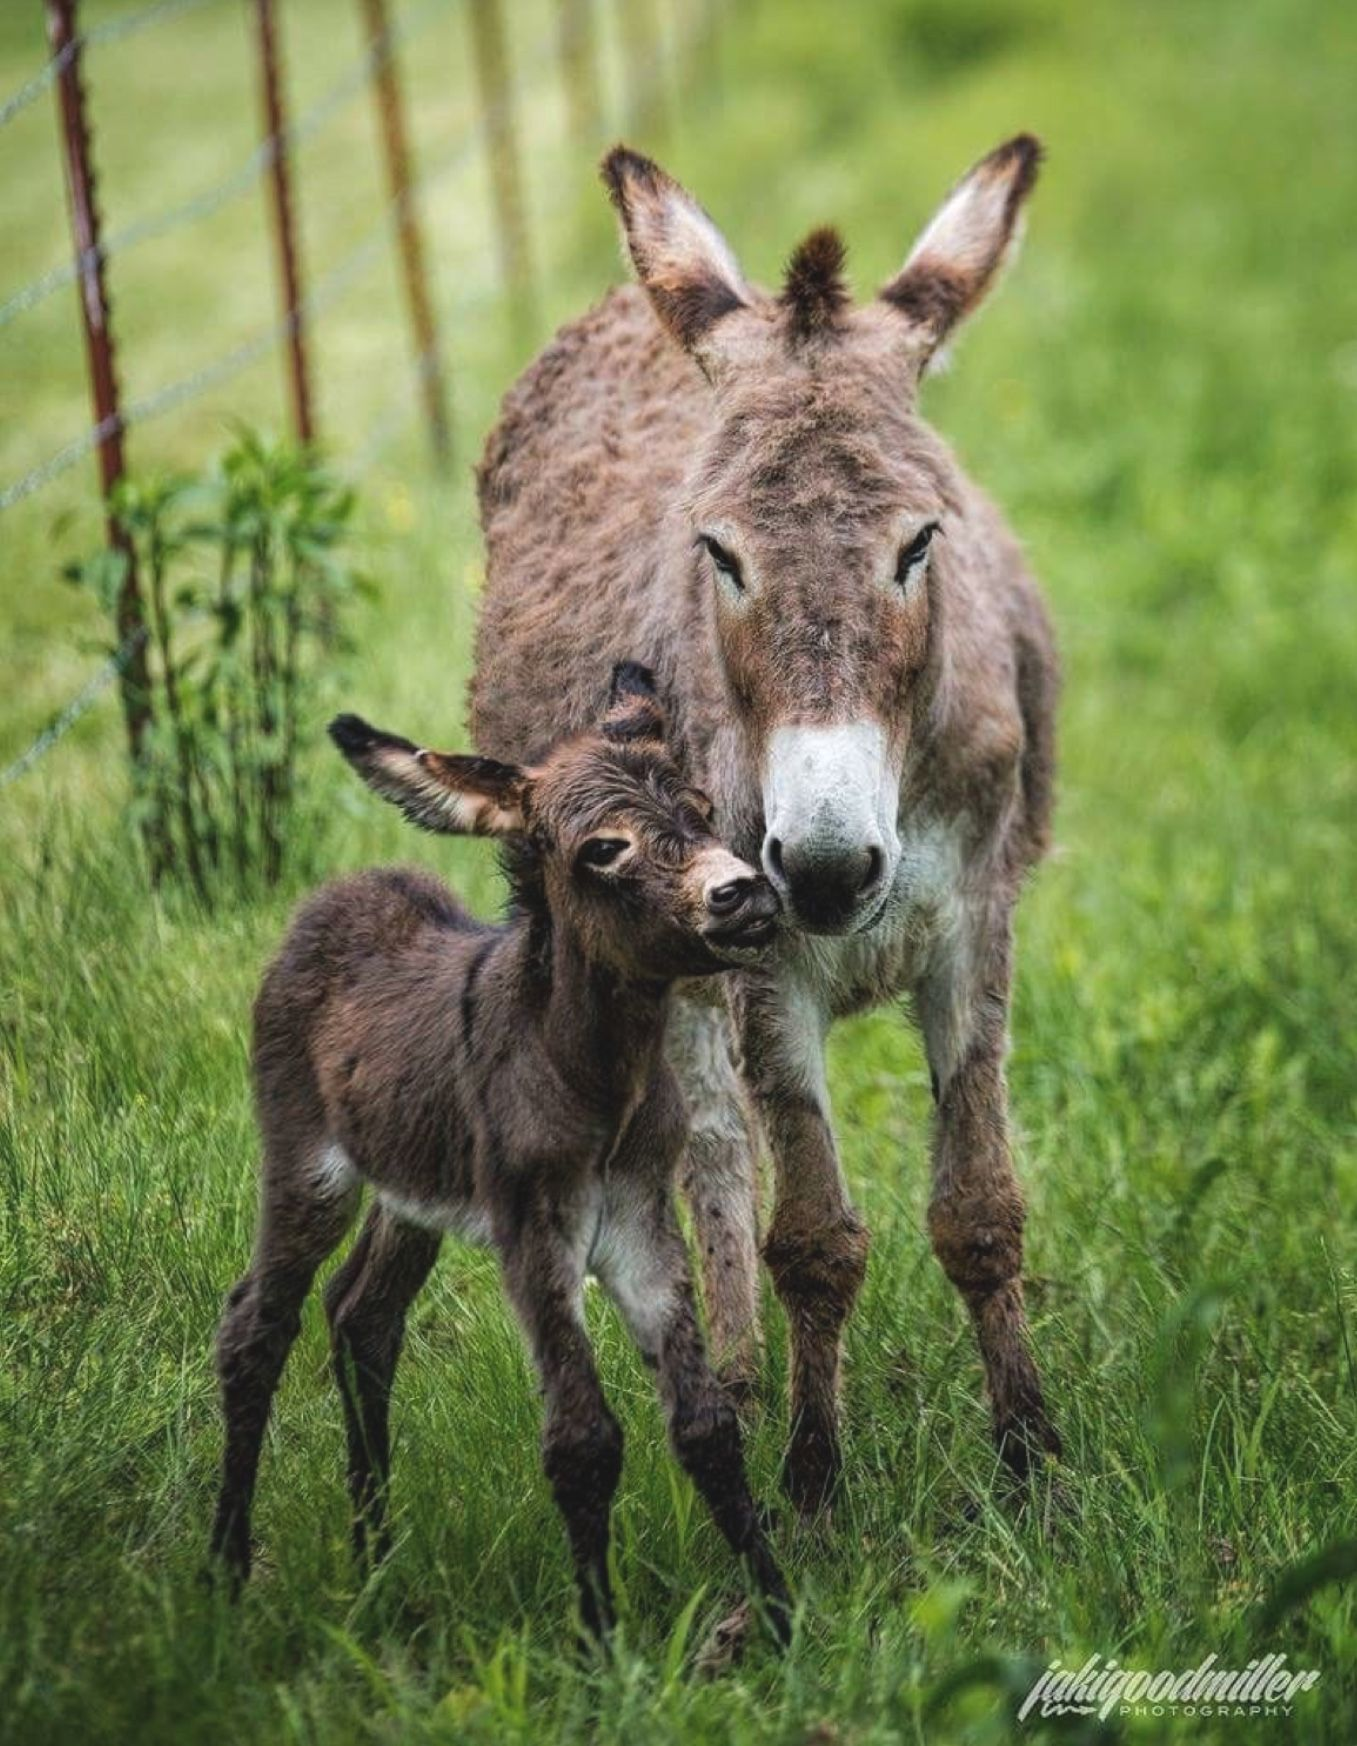 A donkey jennie and her cute little foal. Baby donkey